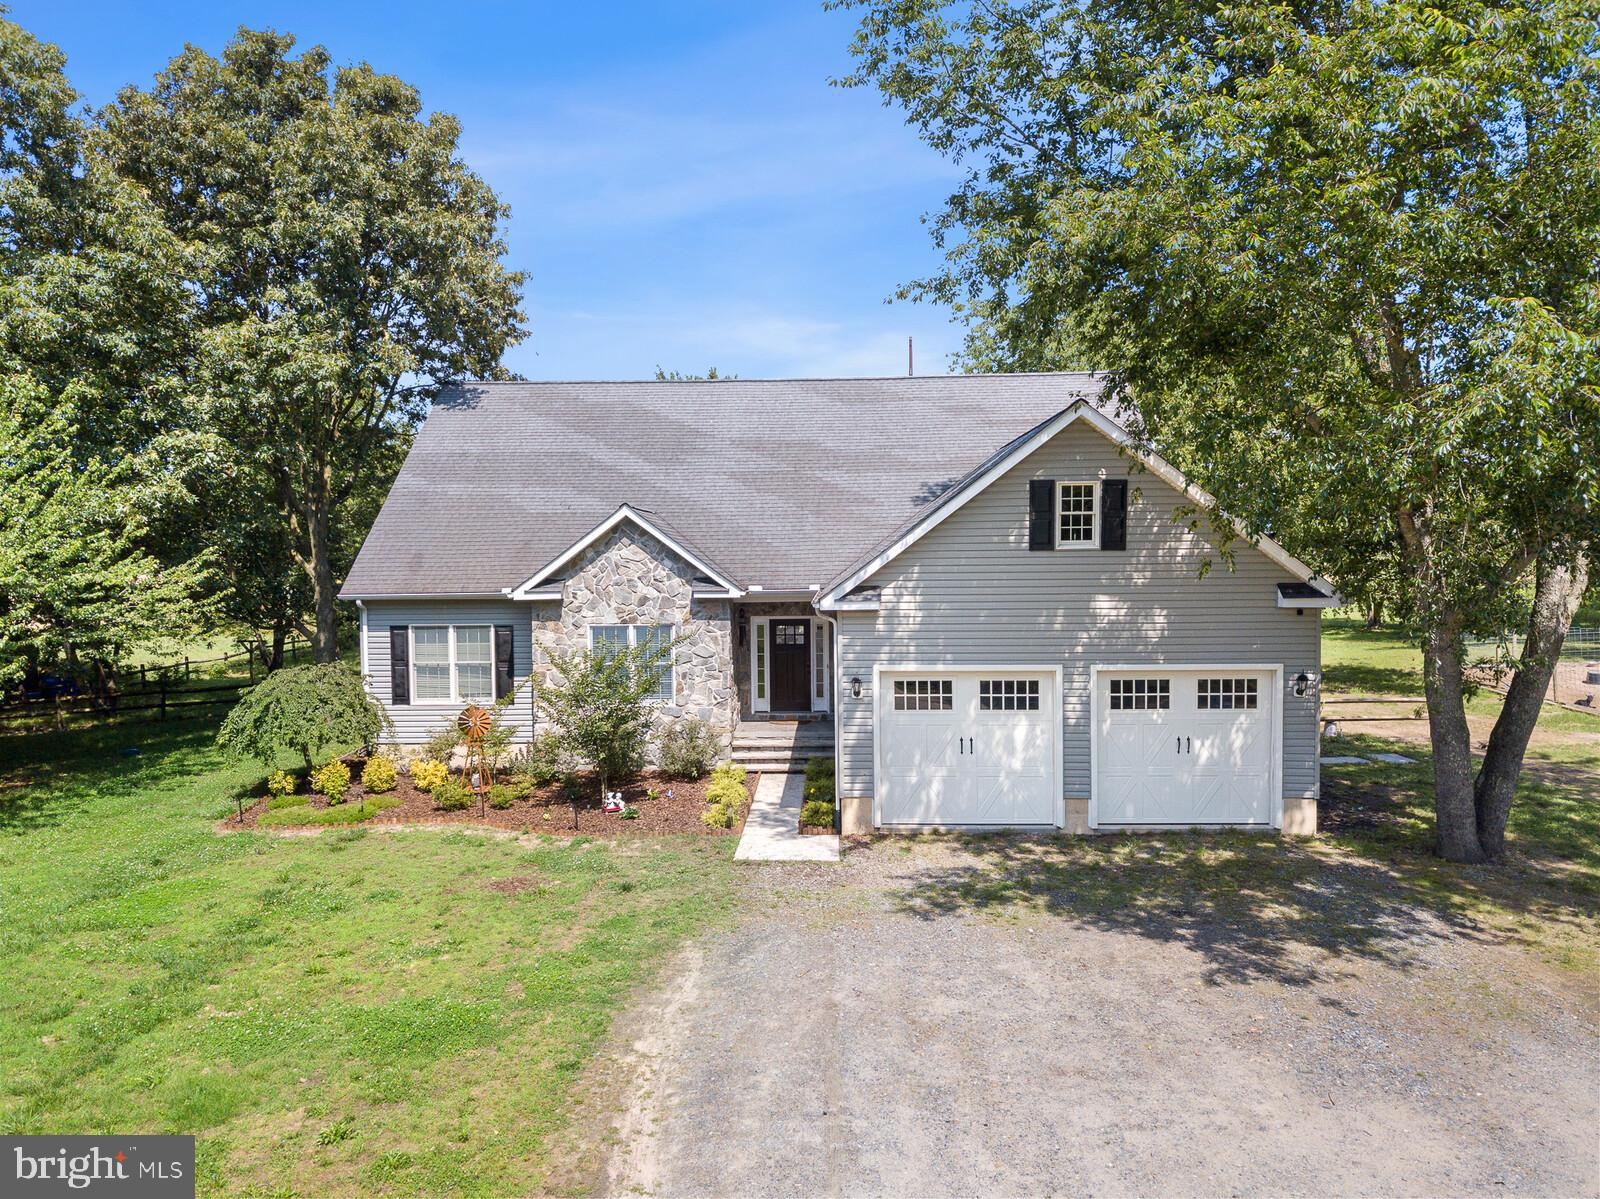 """Welcome to 20887 Johnson Road!   This incredible newer model home has been well cared for by its current owners.   Make your way up the long driveway of this  2 acre property and head inside.  The home has been upgraded with incredible pine 8"""" wide plank hardwood floors, that greet you upon entry.   Inside you will find a modern, open layout, and a huge gourmet kitchen outfitted with newer cabinets and gleaming granite.  The Kitchen also offers a breakfast bar, and plenty of room for a dining table.   The dining area has windows and french doors facing westward, the perfect place to catch sunset.   You may also enjoy this view from your deck, which currently leads to an above ground pool which will be included in the sale of the home.  The Primary suite offers a full bath and walk in closet, with the secondary a tertiary bedrooms just a short walk across the living room.   Upstairs there is a more private suite, complete with a bedroom and full bath.  The Basement is perfect for any buyer looking to add square footage, as nearly all of it has been framed and drywalled.  With a little bit of effort the new owners of this home should be able to add plenty of usable square footage, as the basement has also been outfitted with an egress.  You are invited to tour this home, Schedule your showing, today!"""